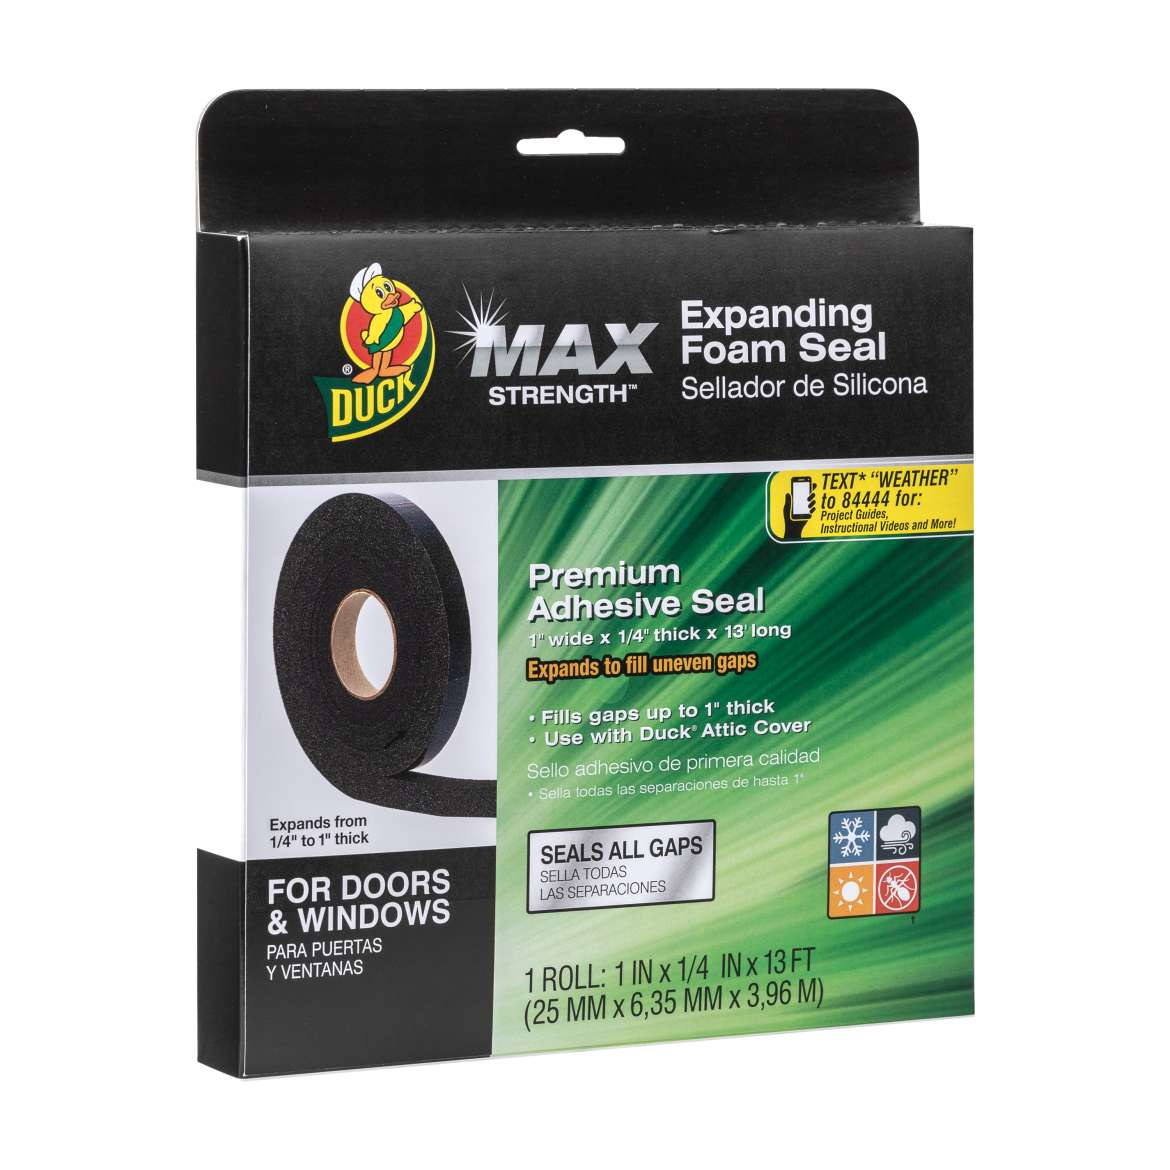 Max Strength Expanding Foam Seal